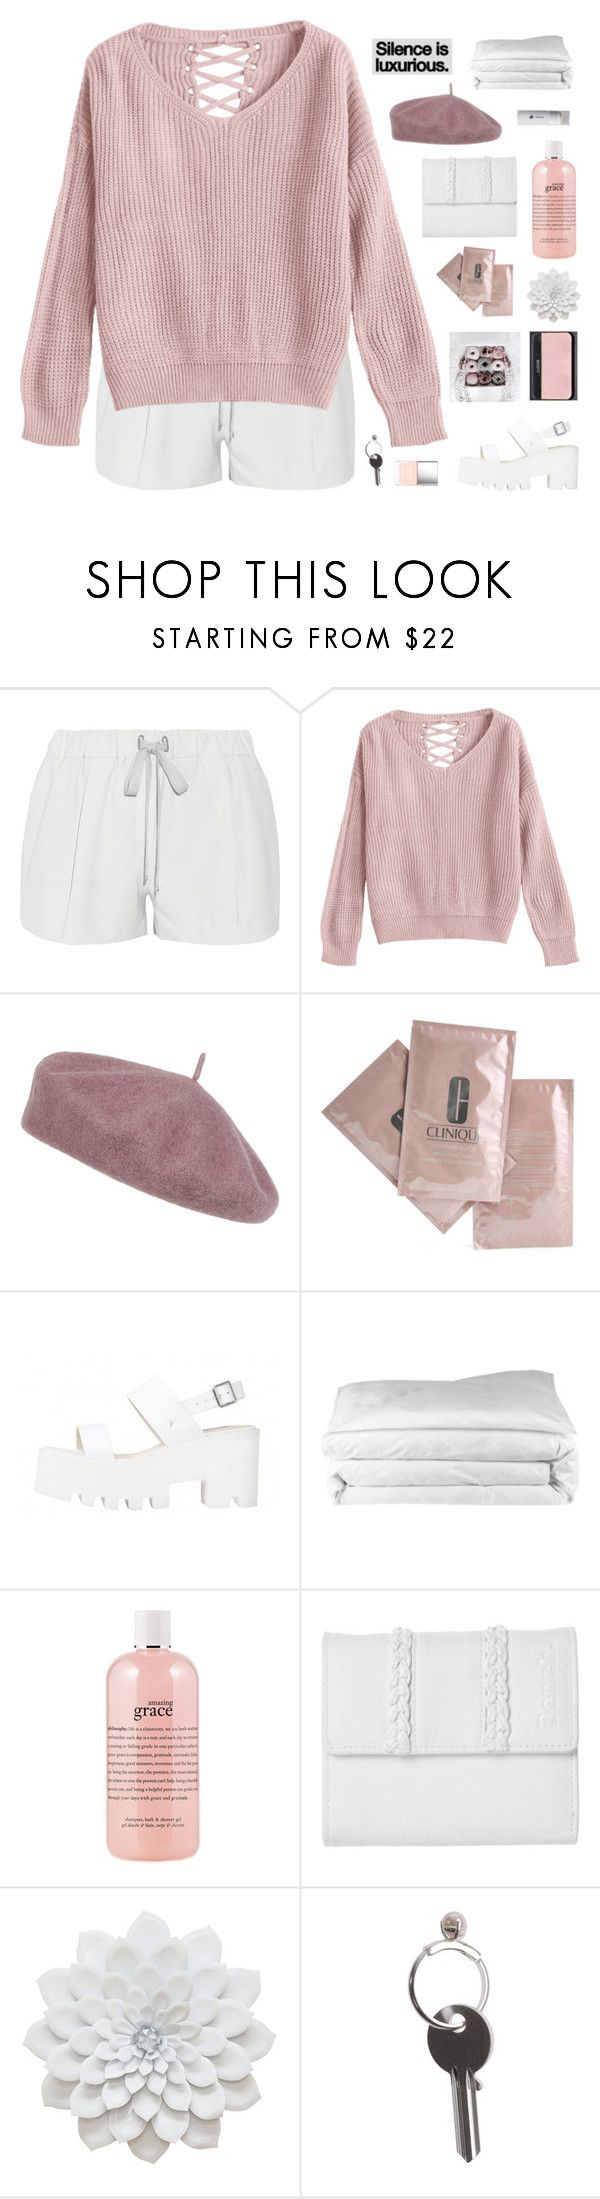 """""""she hit the floor"""" by via-m ❤ liked on Polyvore featuring Elizabeth and James, Accessorize, Clinique, Frette, NARS Cosmetics, philosophy, GET LOST, Bench, Butter London and Maison Margiela"""